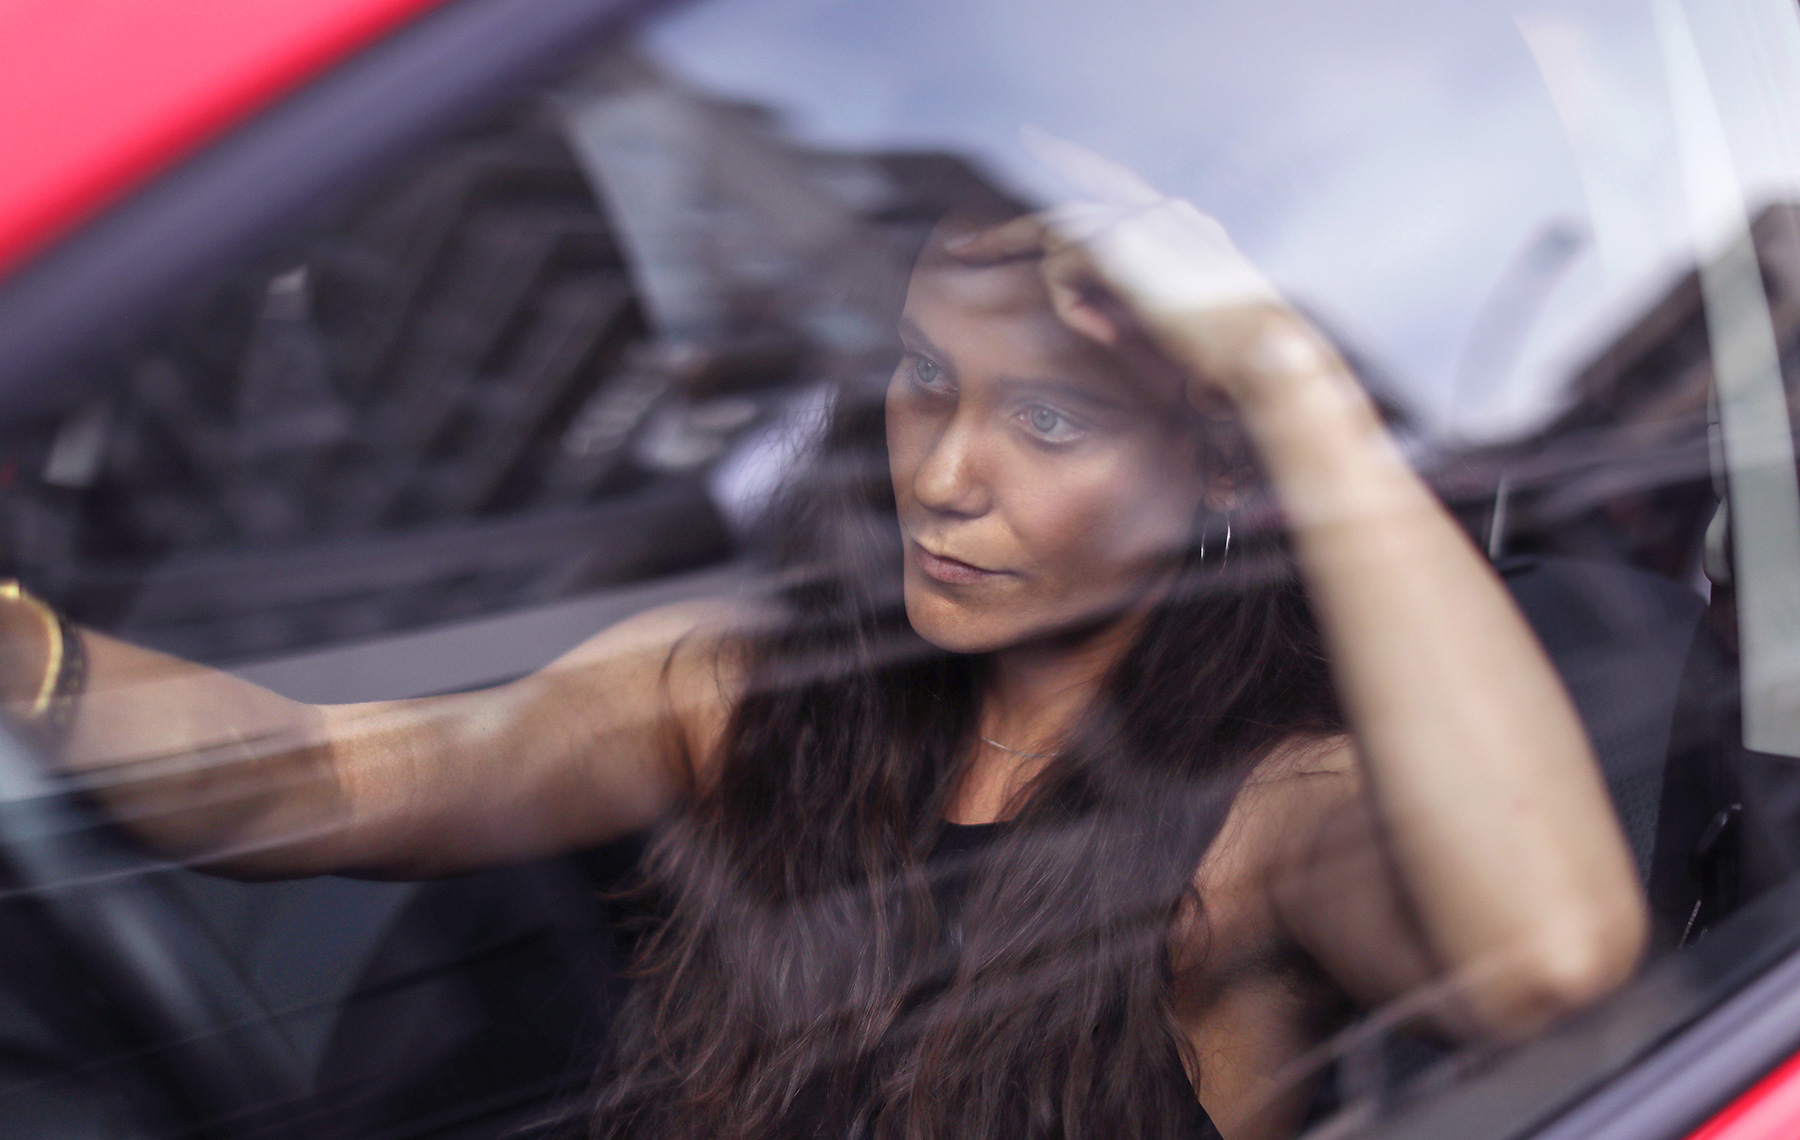 Woman feeling lonely trapped in the traffic